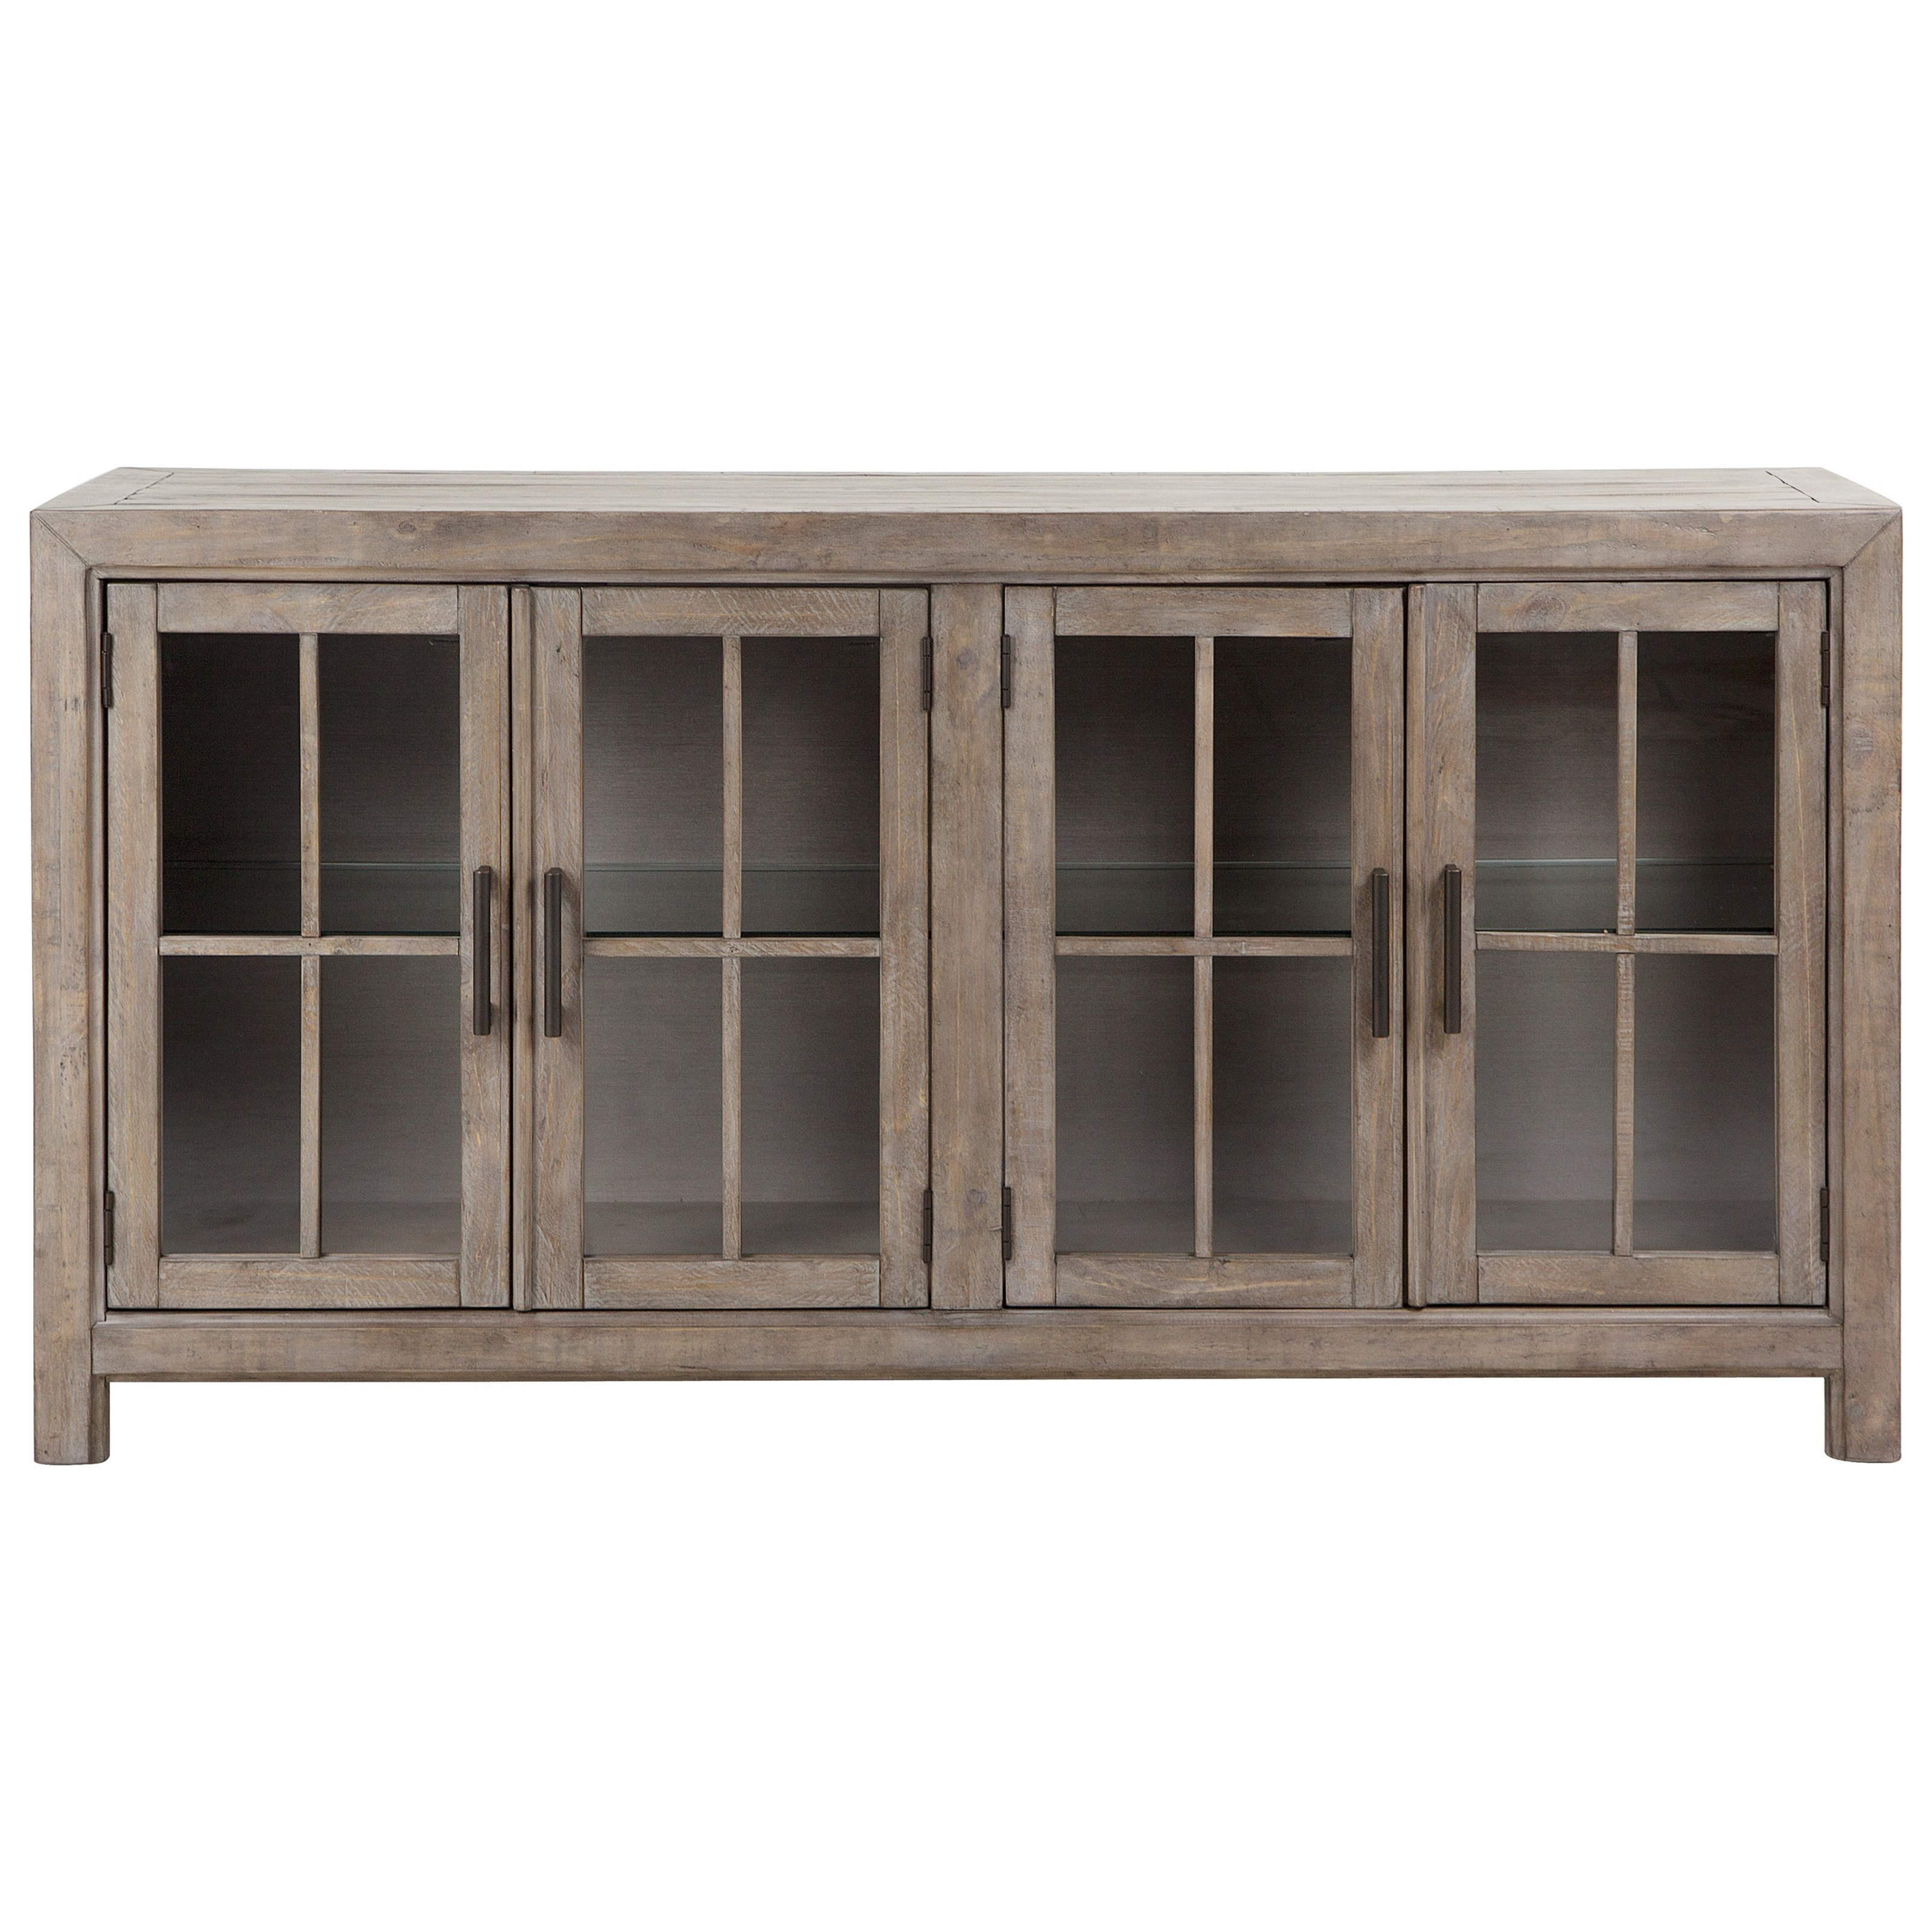 Relaxed Vintage Buffet Curio Cabinet with LED Lighting